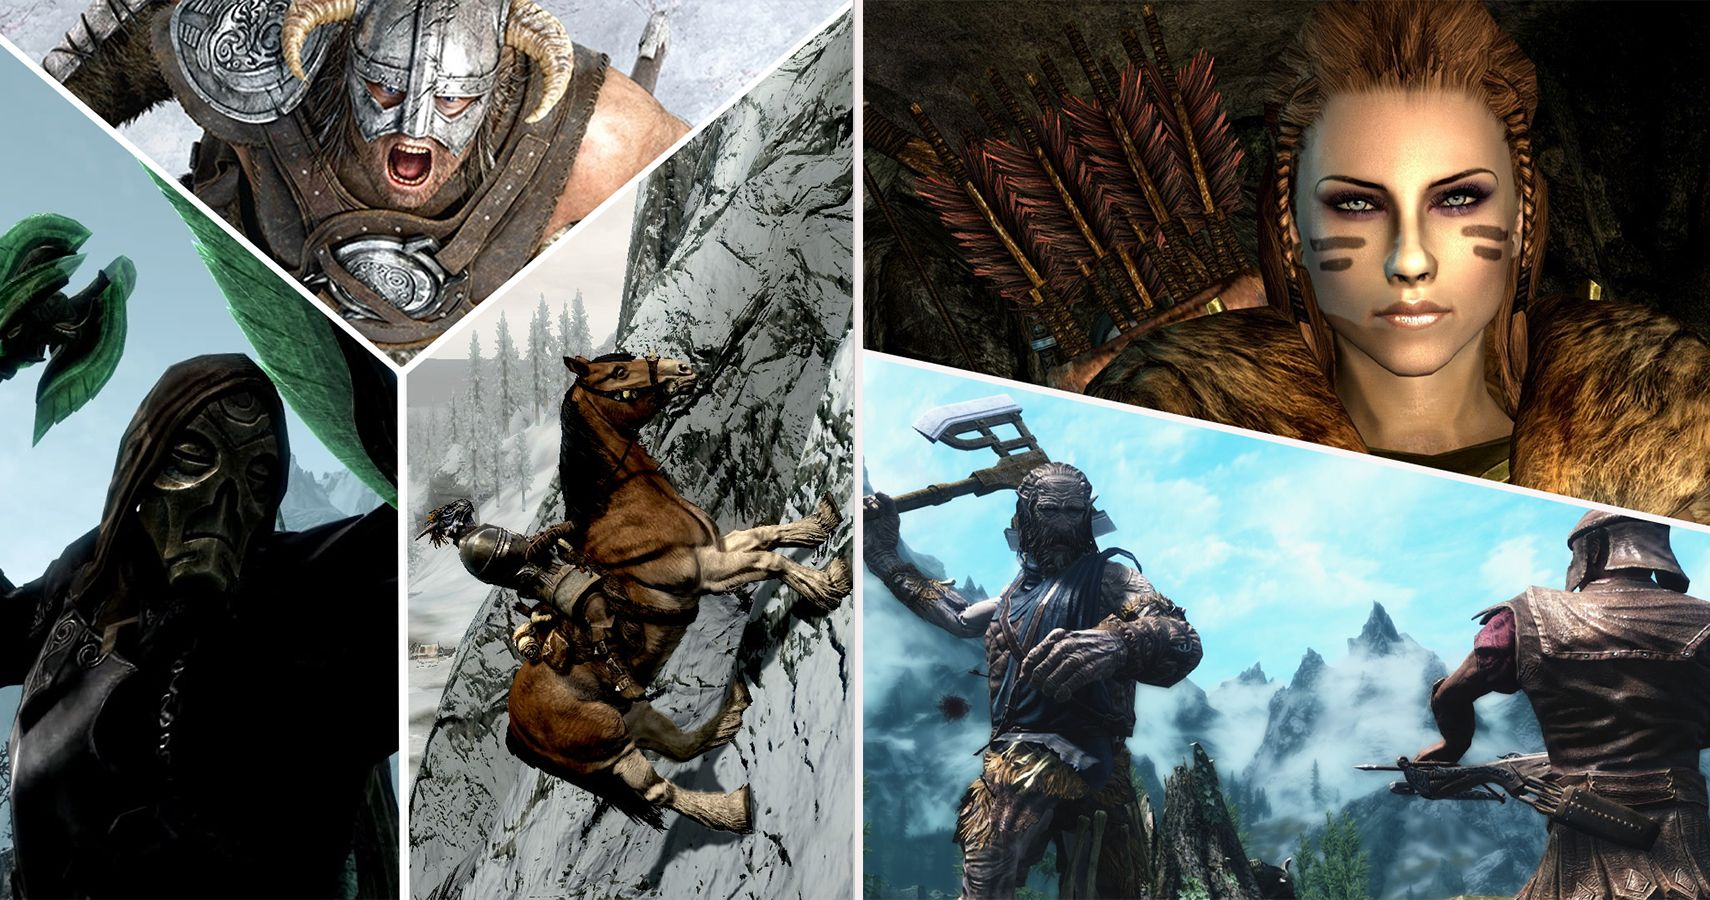 25 Crazy Things In Skyrim That Are So Strong They Break The Game